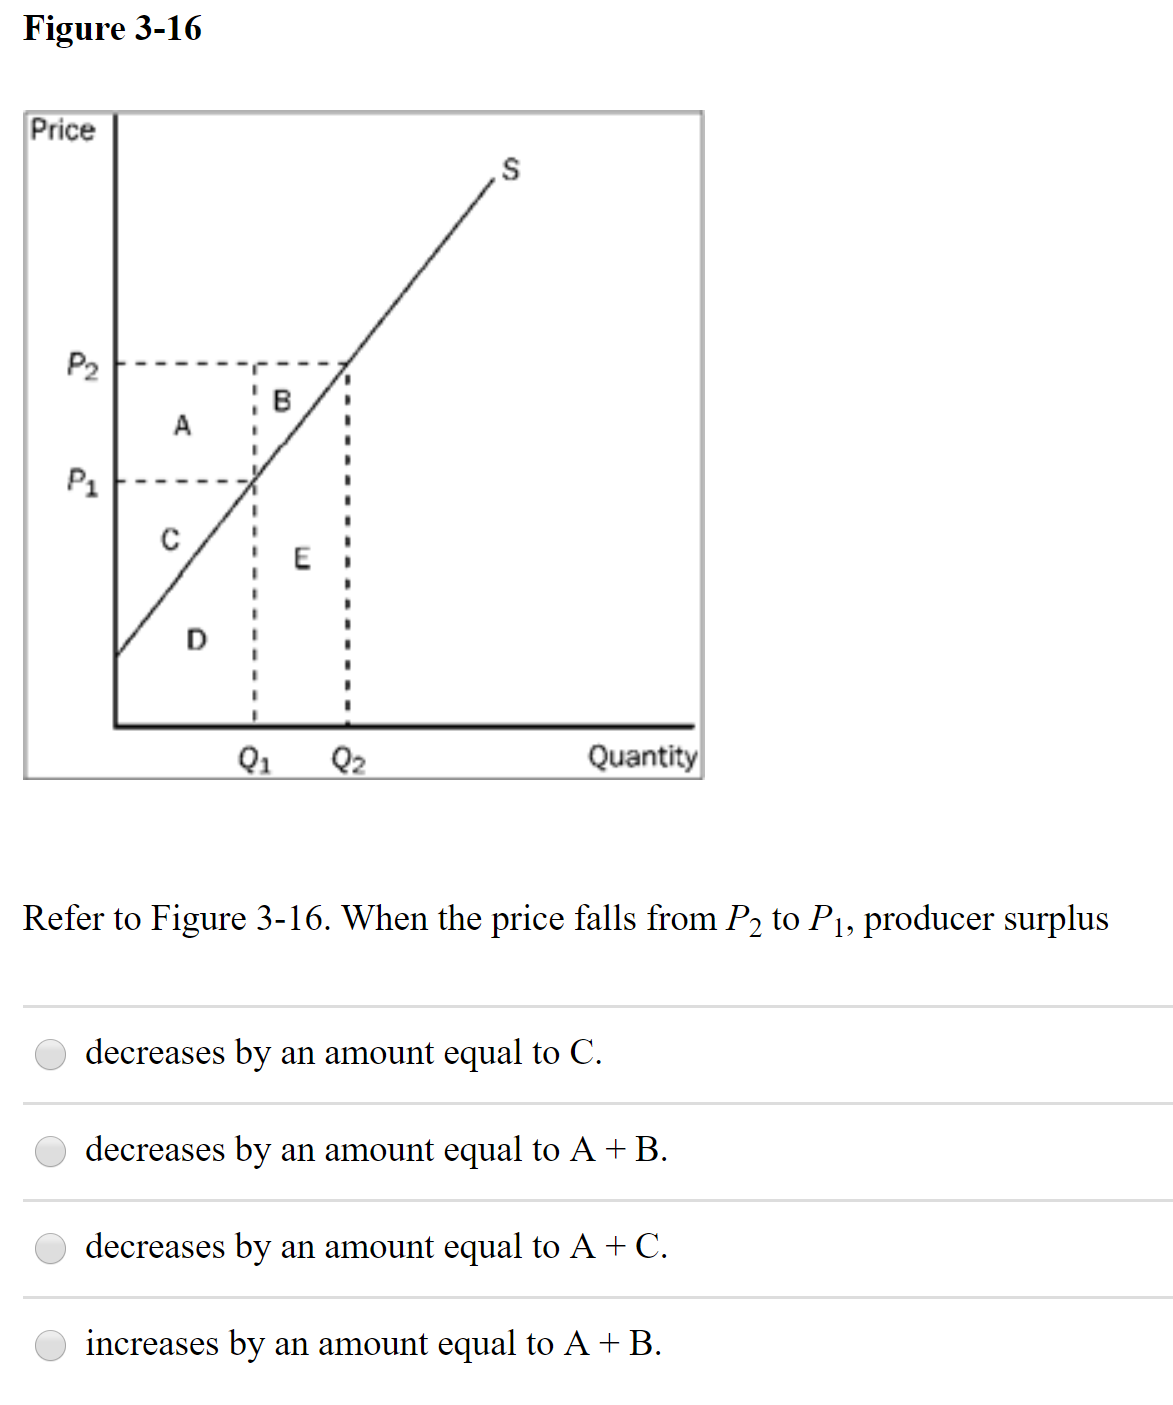 Figure 3-16 Price P2 A P1 Q1 Q2 Quantity Refer to Figure 3-16. When the price falls from P2 to P1, producer surplus decreases by an amount equal to C. decreases by an amount equal to A + B. decreases by an amount equal to A + C. increases by an amount equal to A + B.